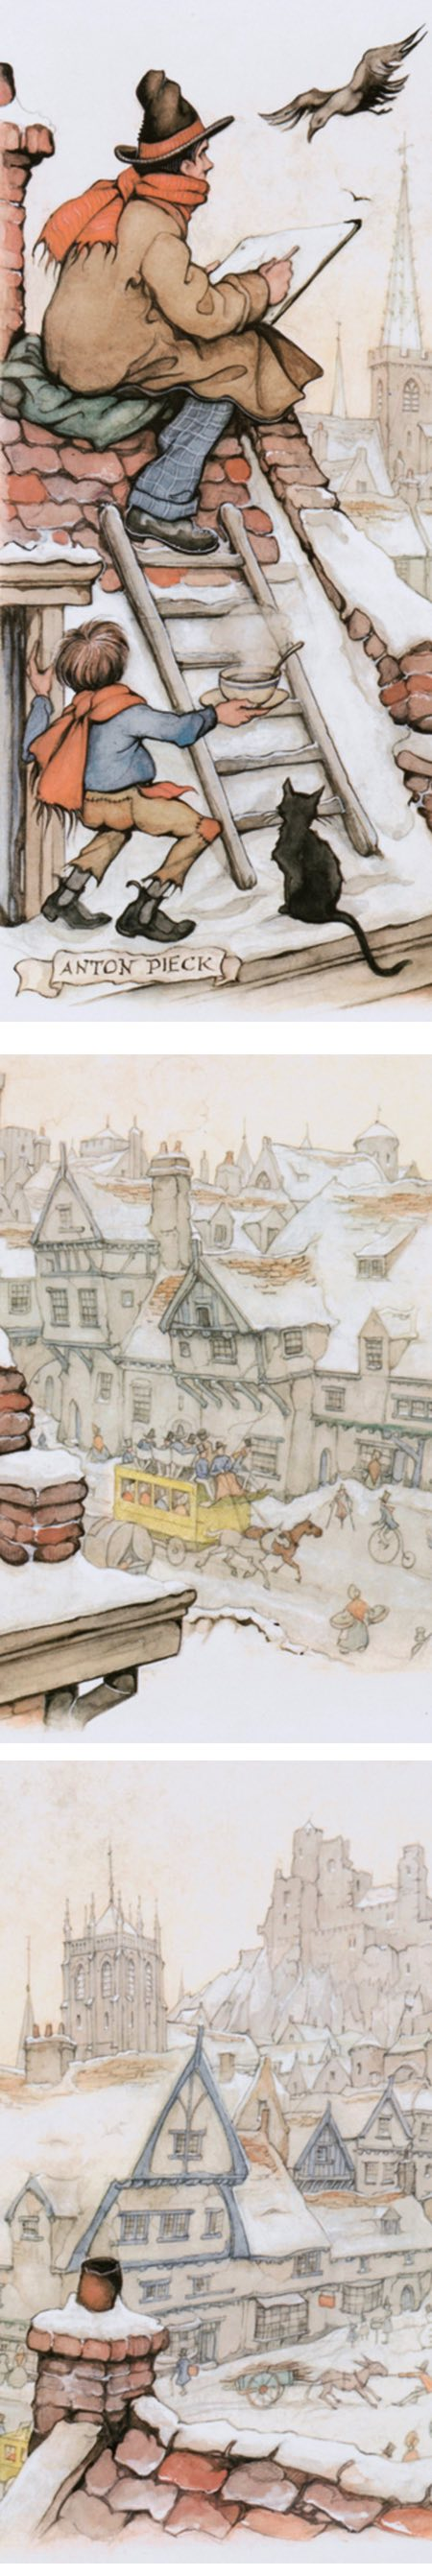 The Roof Painter, Anton Pieck